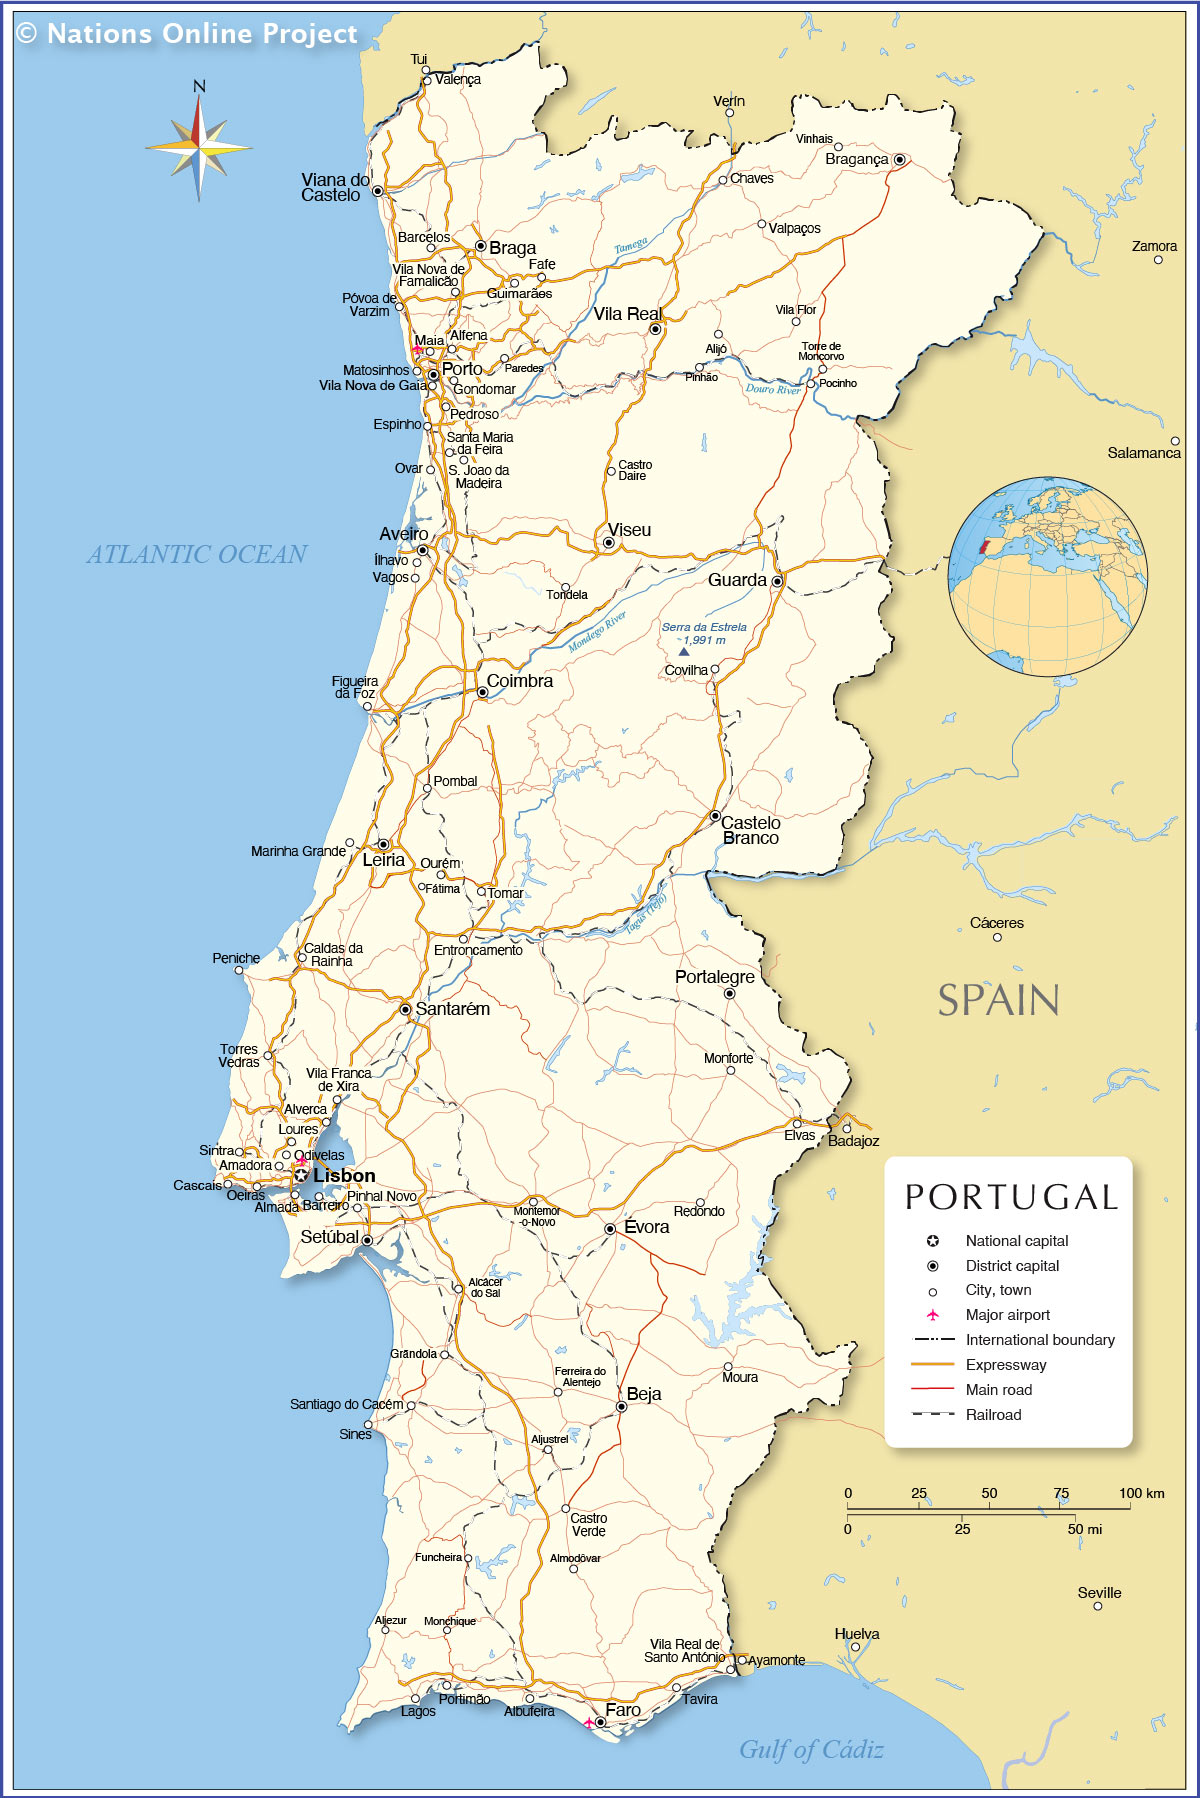 Political Map Of Portugal Nations Online Project - Portugal map with airports